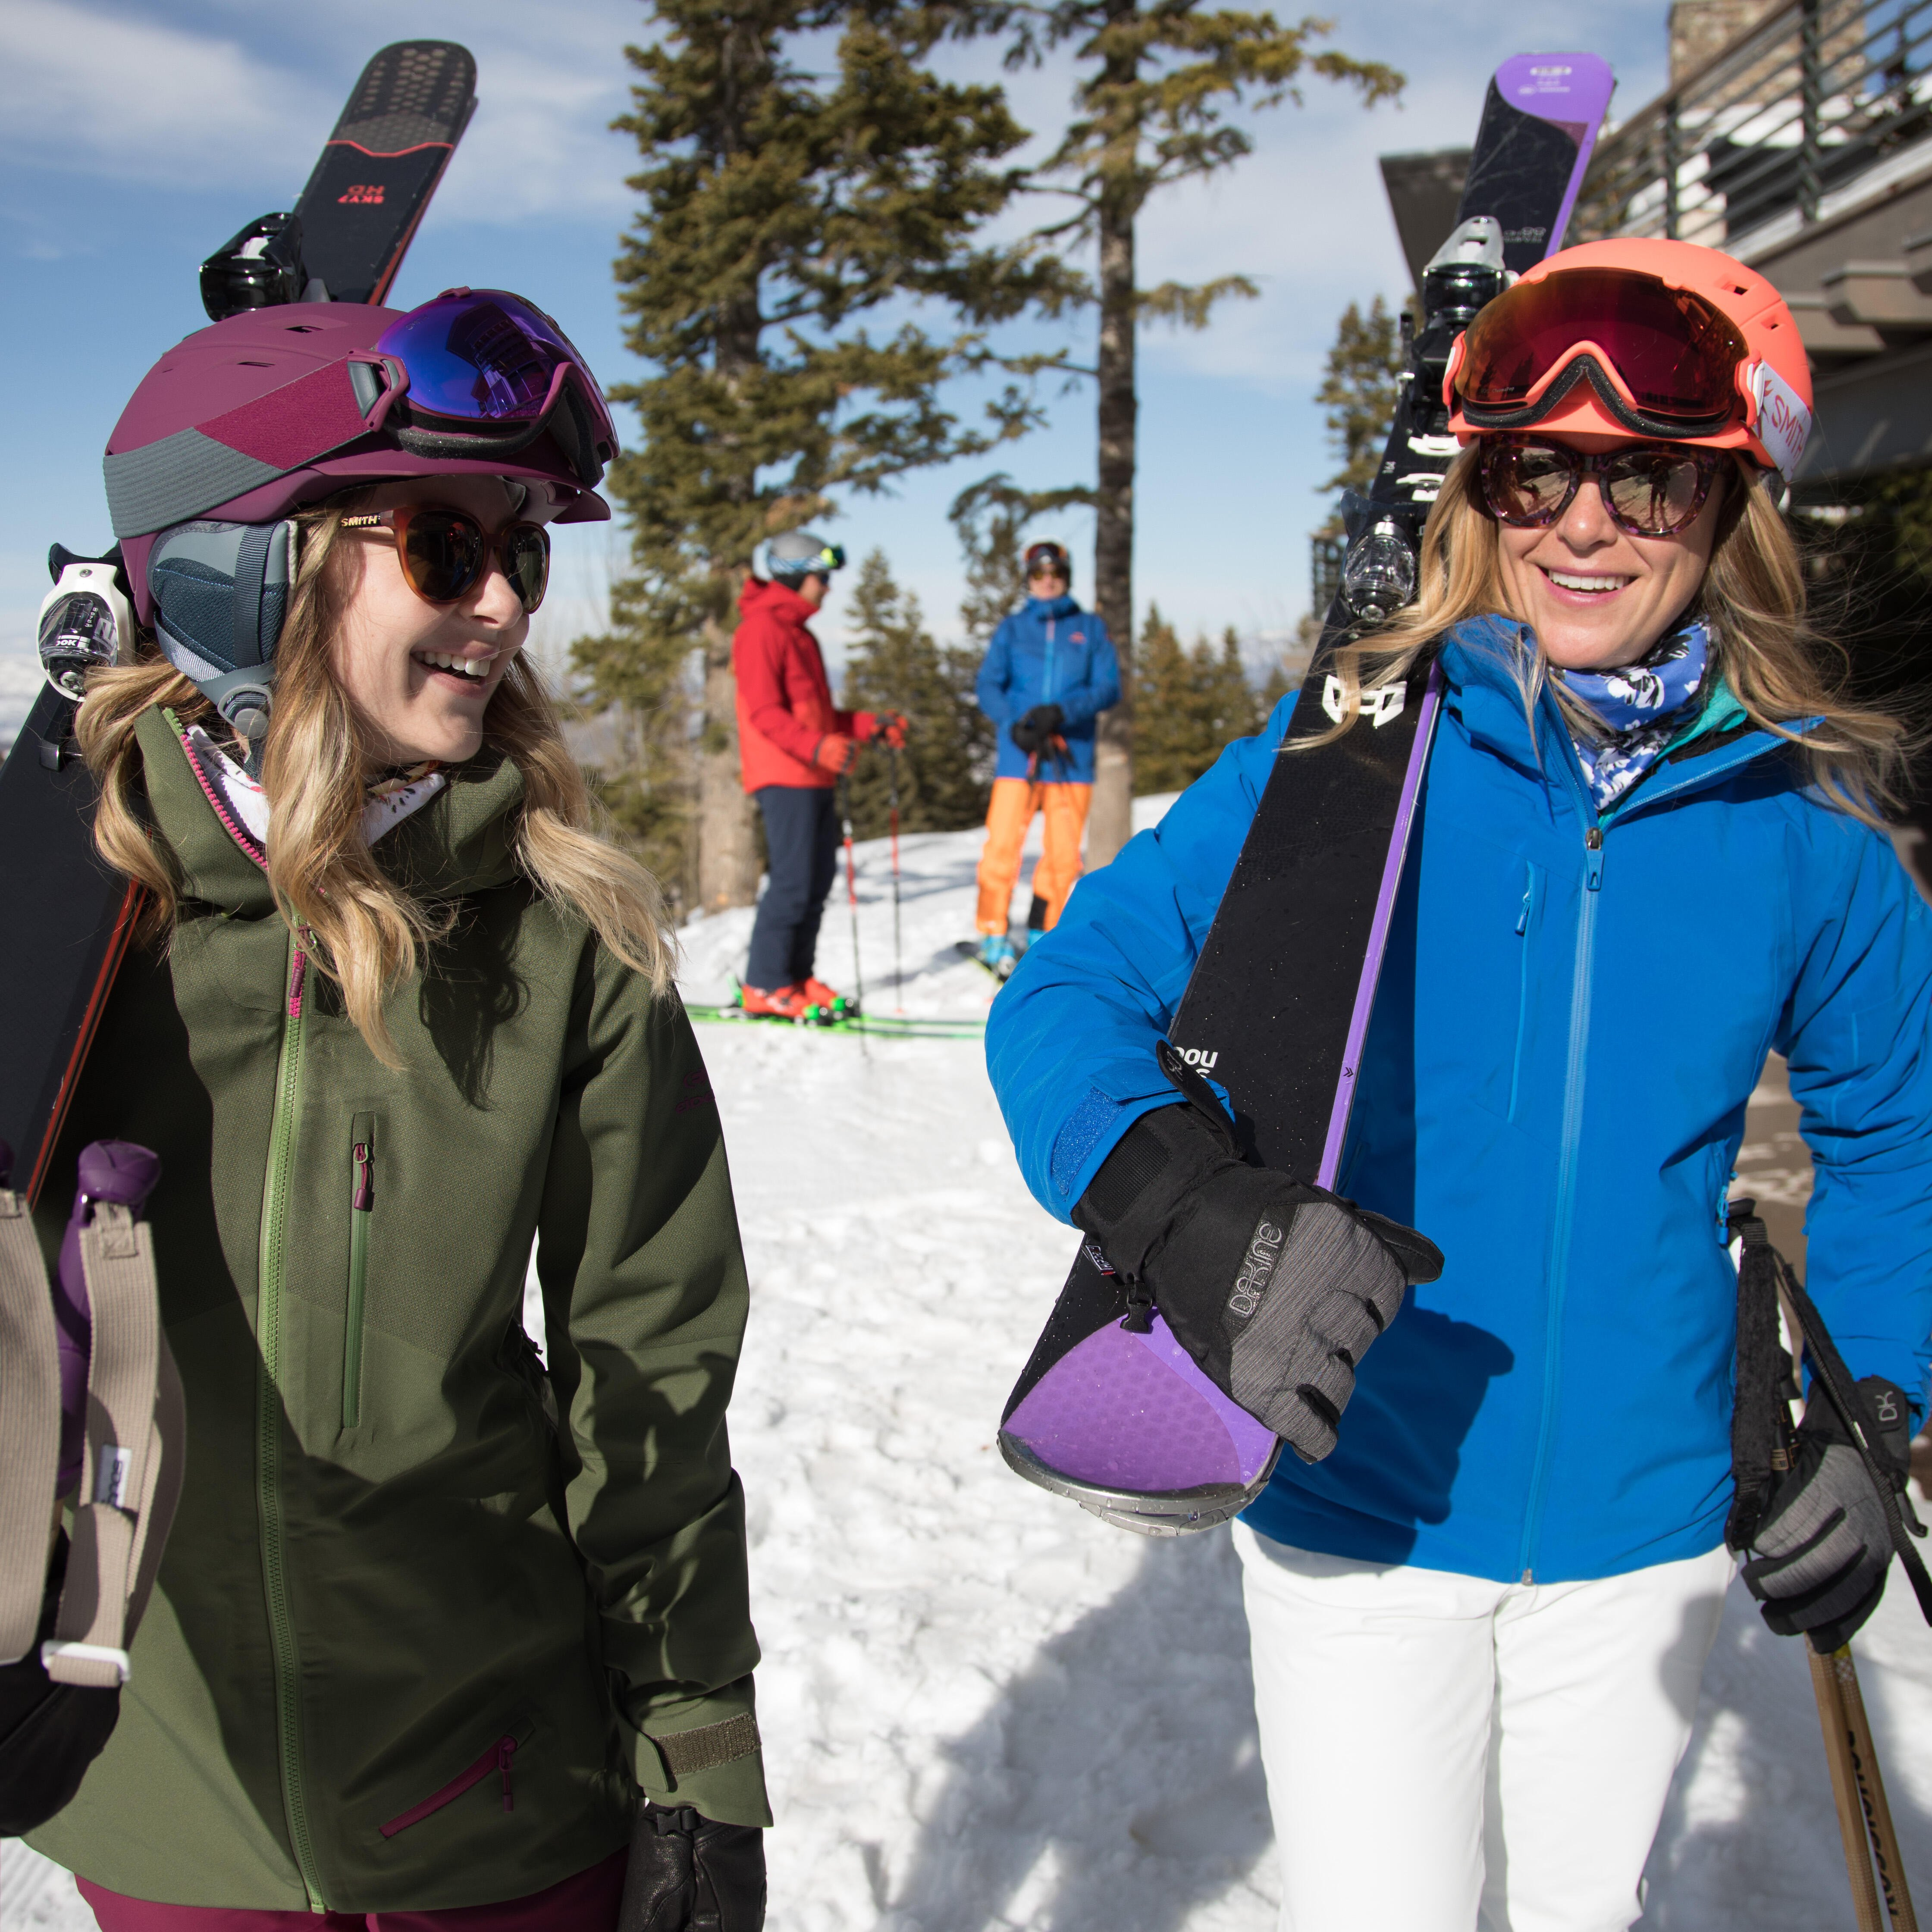 female skiers on a sunny day